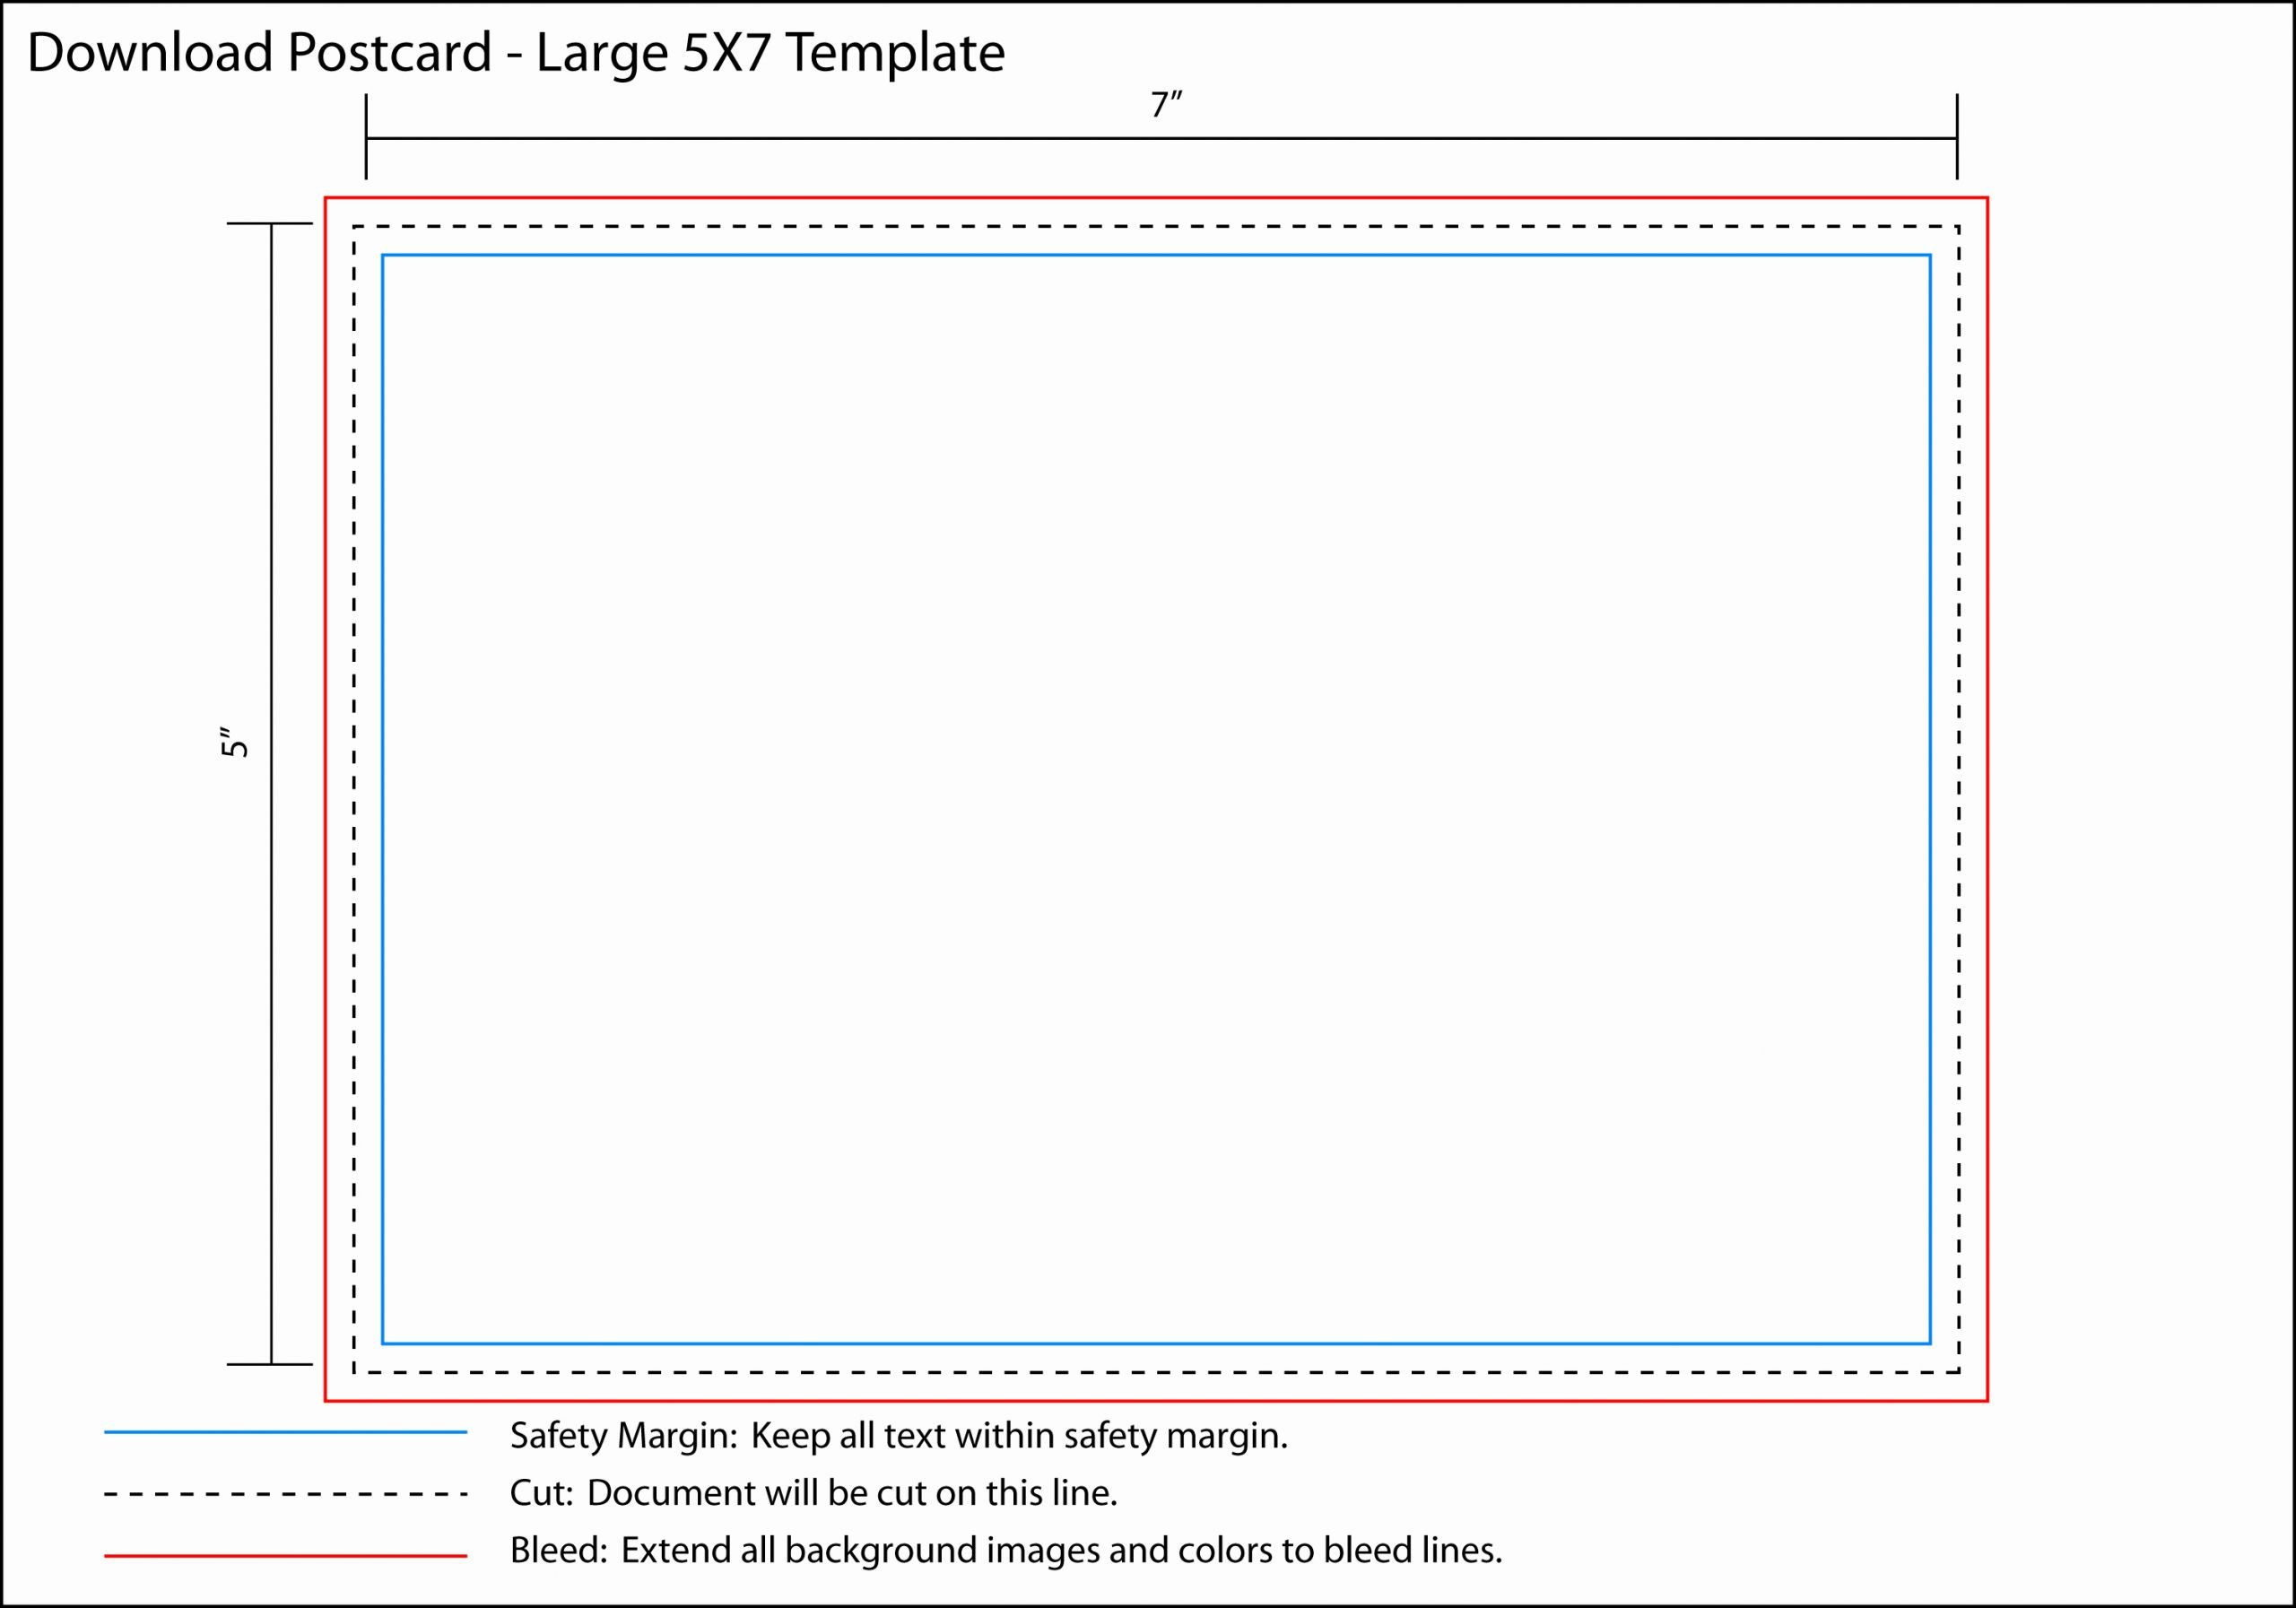 5x7 Invitation Template Word Unique Superdups Cd & Dvd Duplication and Replication and More